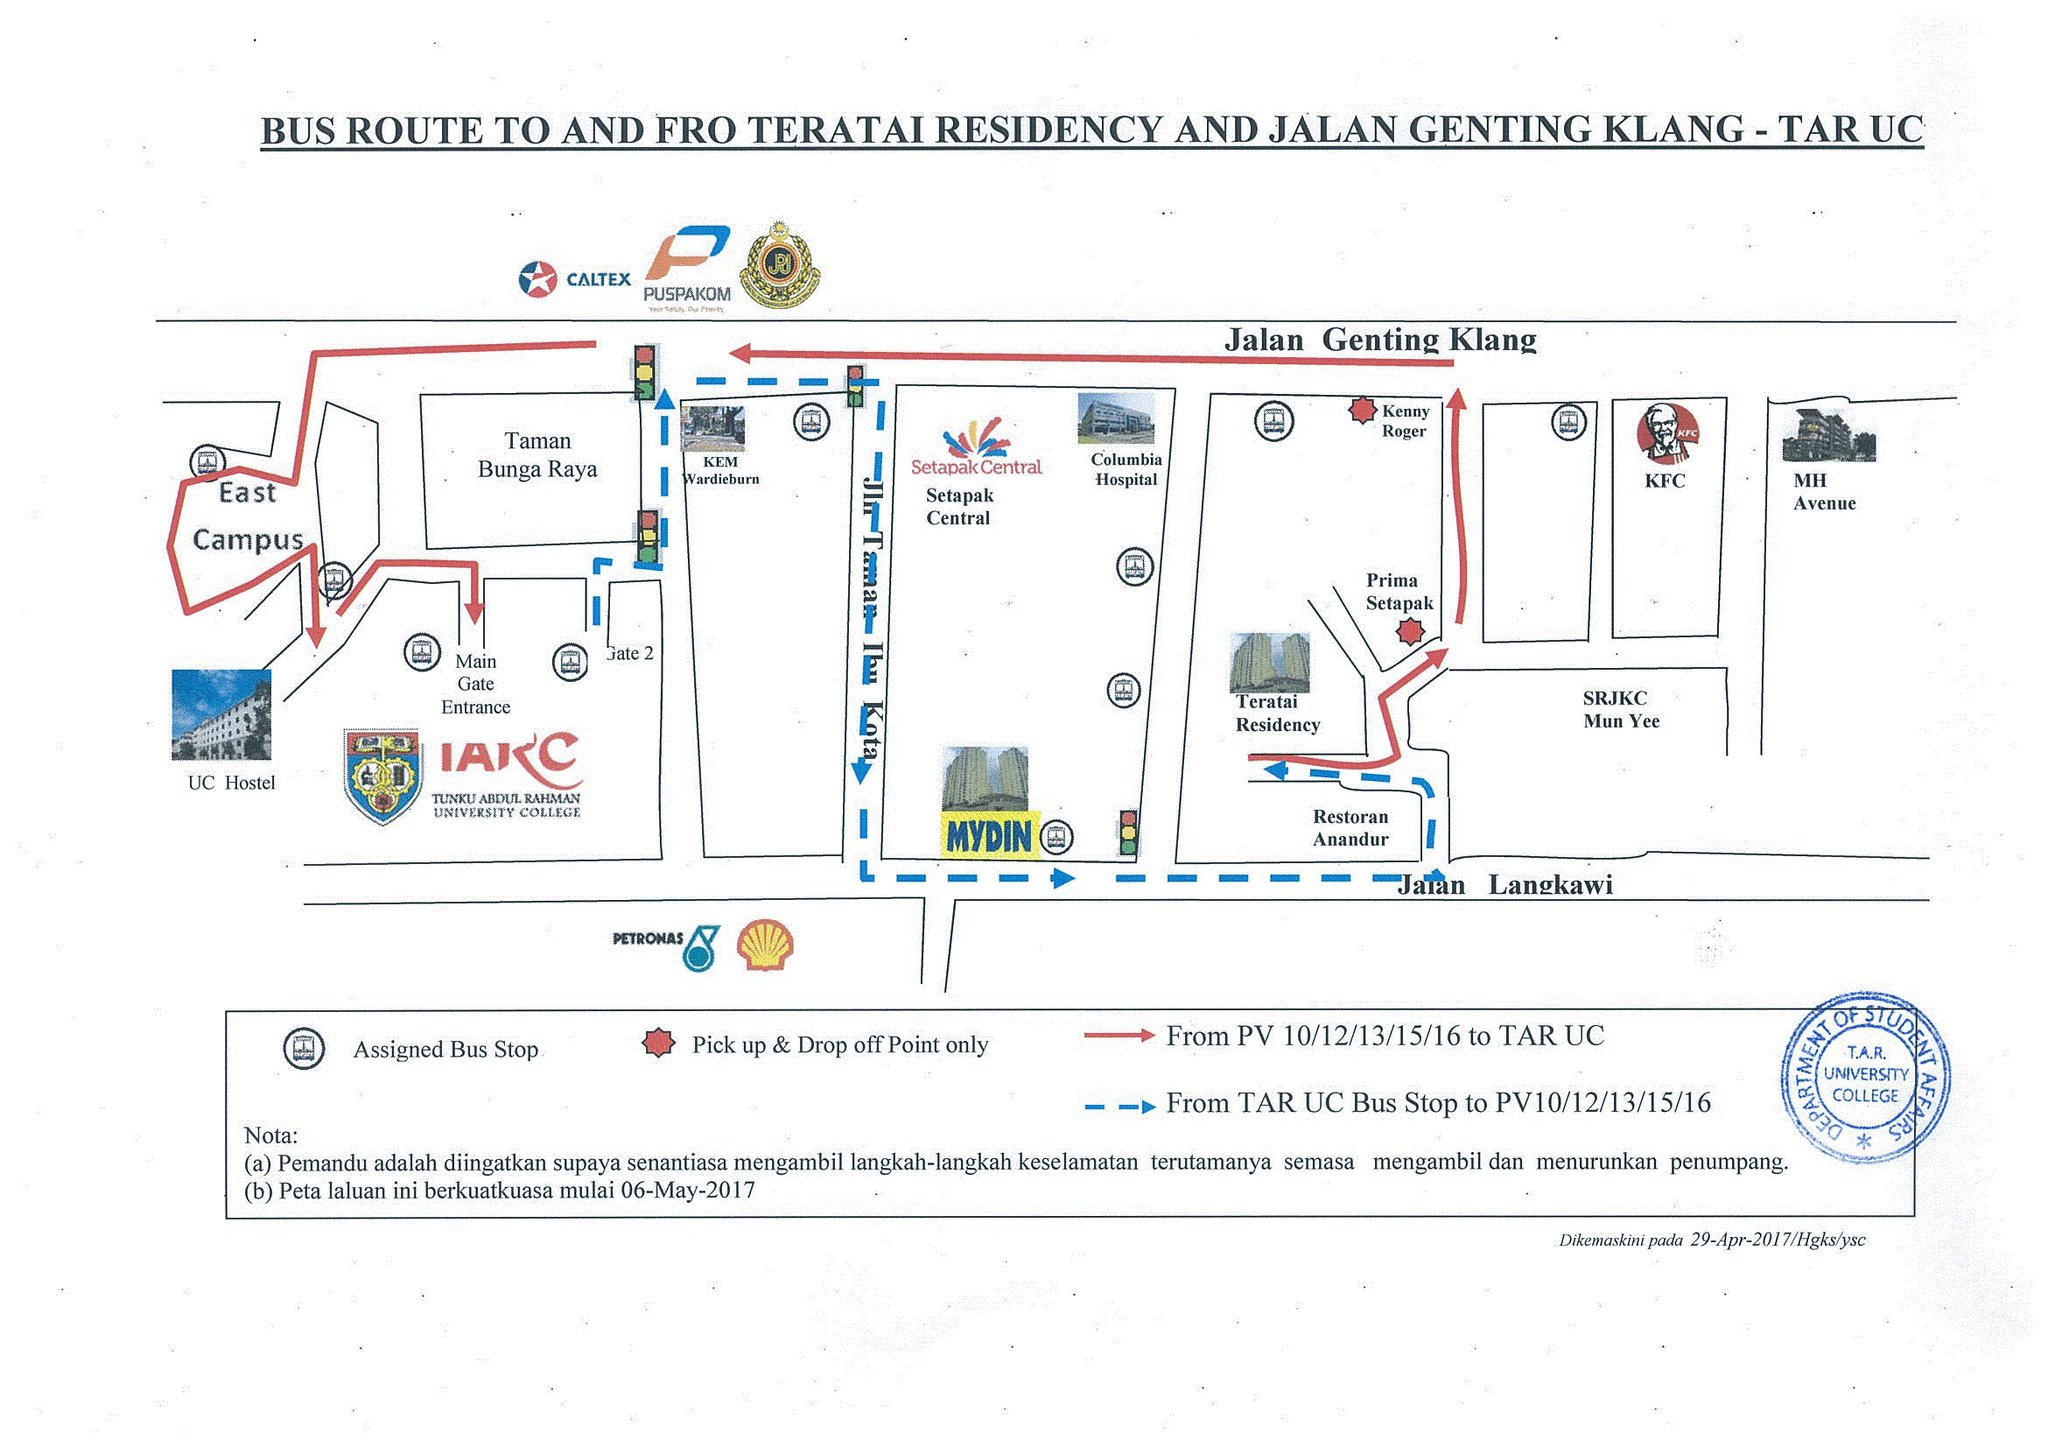 Taruc kl bus service on twitter latest teratai residency jalan taruc kl bus service on twitter latest teratai residency jalan genting klang bus route map with effect from 08 may 2017 ccuart Image collections